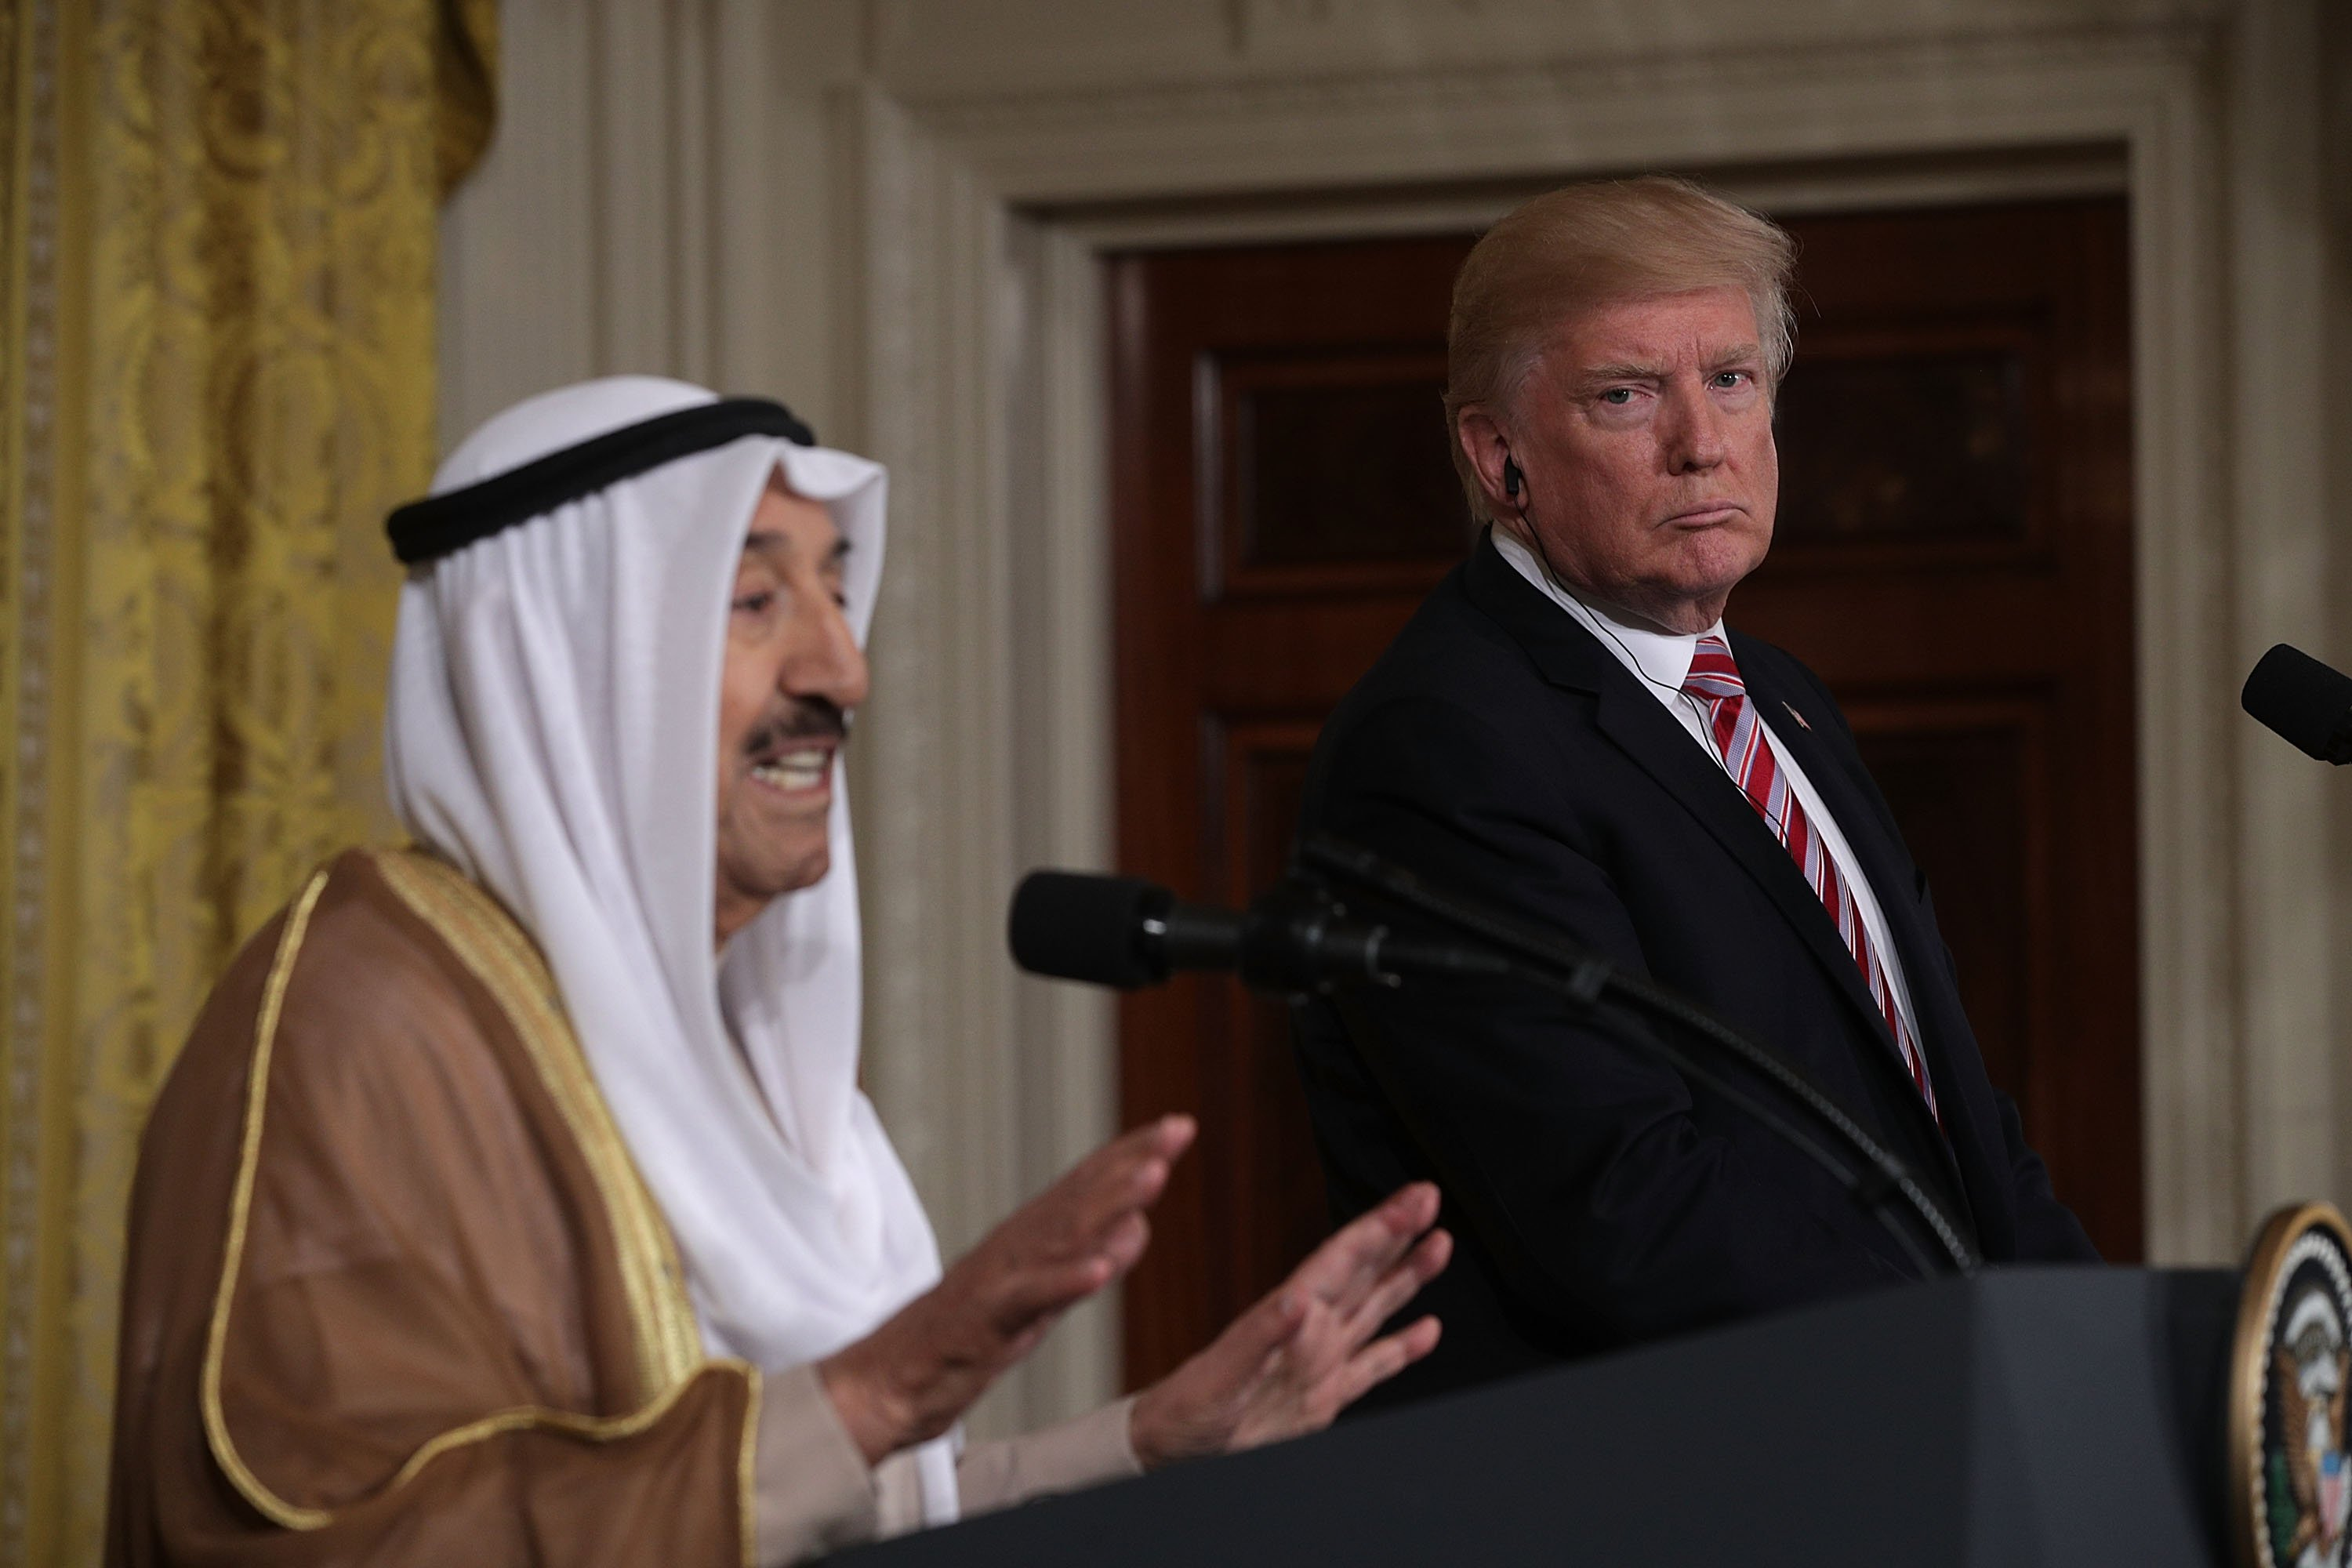 Amir Sabah Al-Ahmad Al-Jaber Al-Sabah of Kuwait (L) and U.S. President Donald Trump (R) participate in a joint news conference in the East Room of the White House September 7, 2017 in Washington, DC. (Photo by Alex Wong/Getty Images)